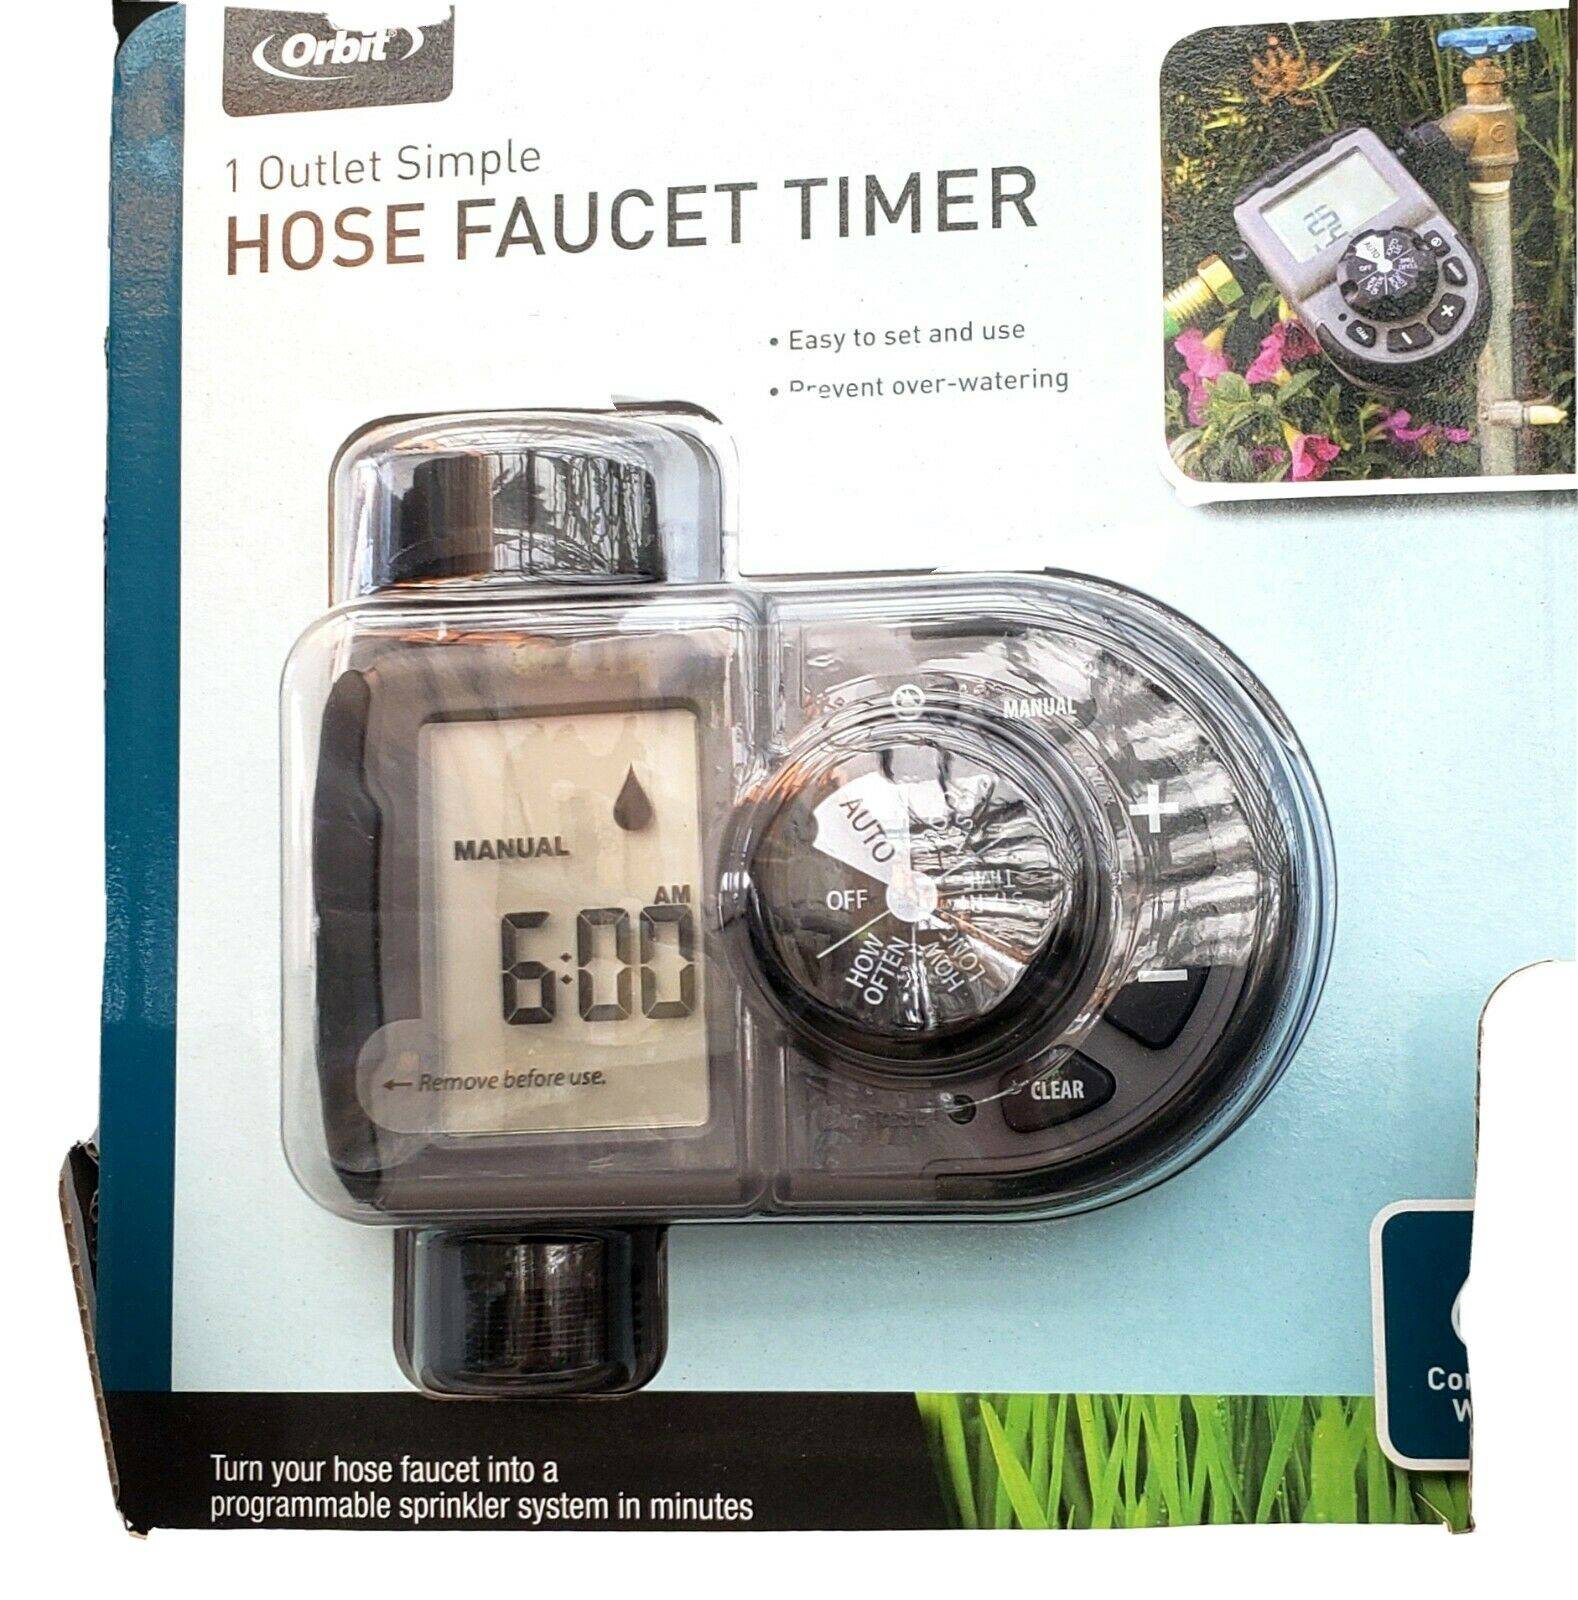 Orbit 1 Outlet Simple Hose Faucet Timer/prevent Over -watering